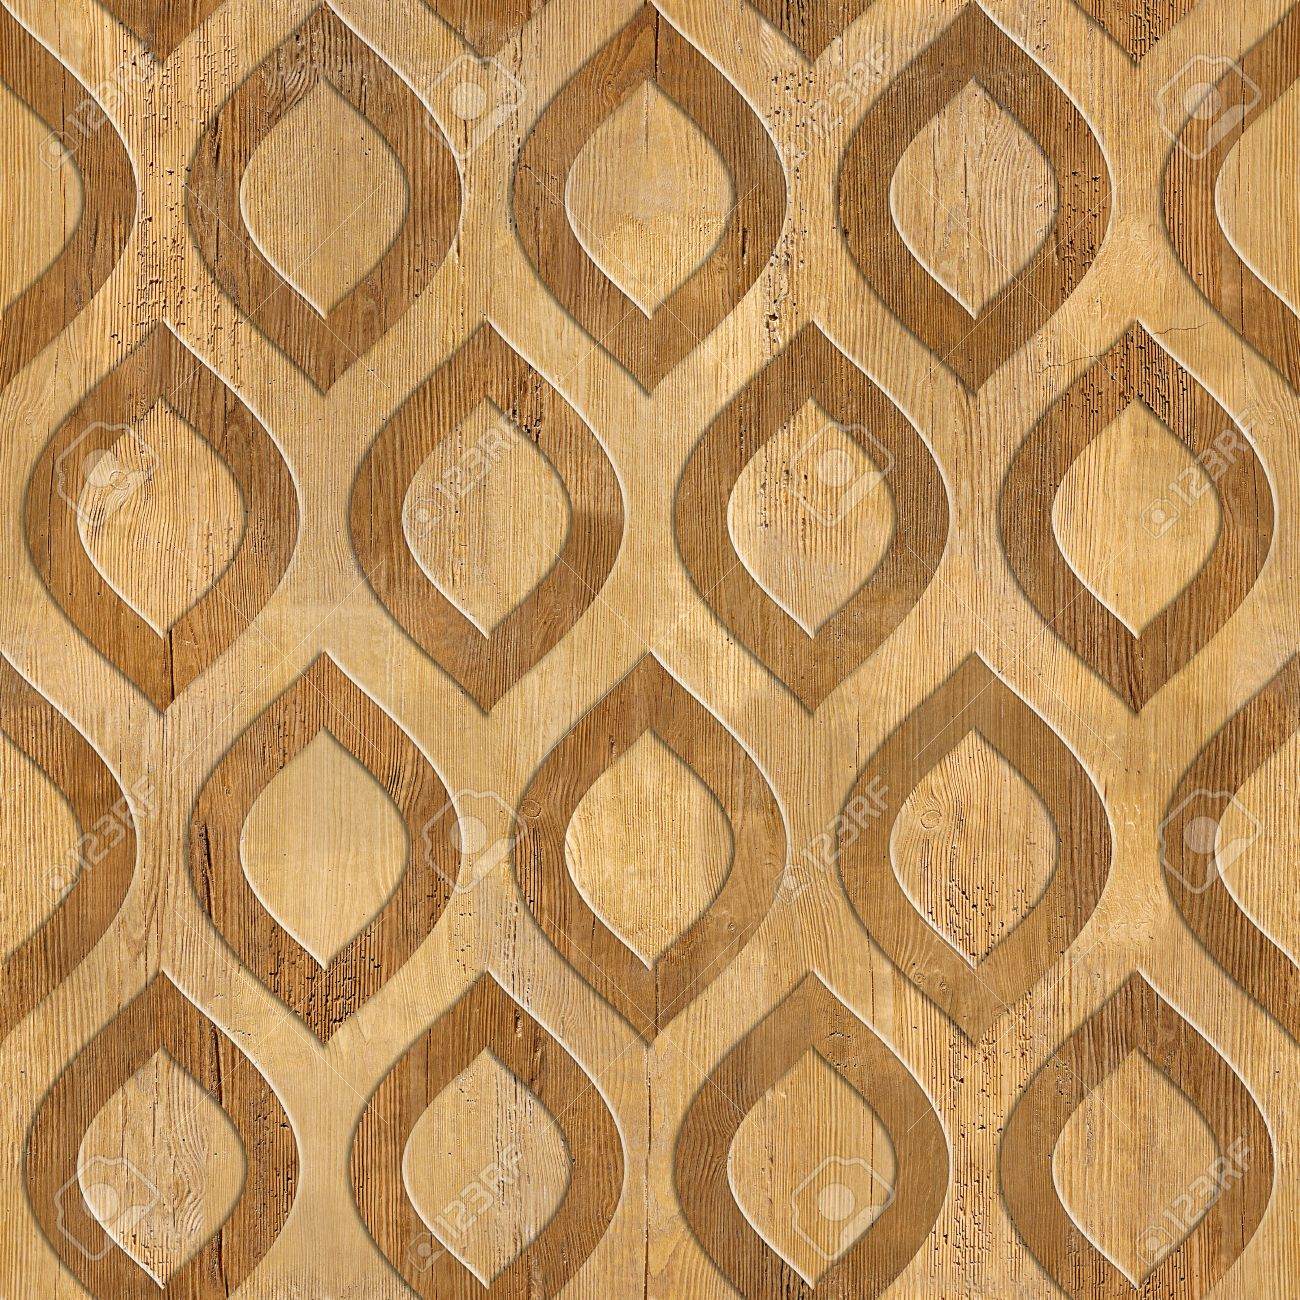 Oriental Decorative Pattern Wood Texture Seamless Background